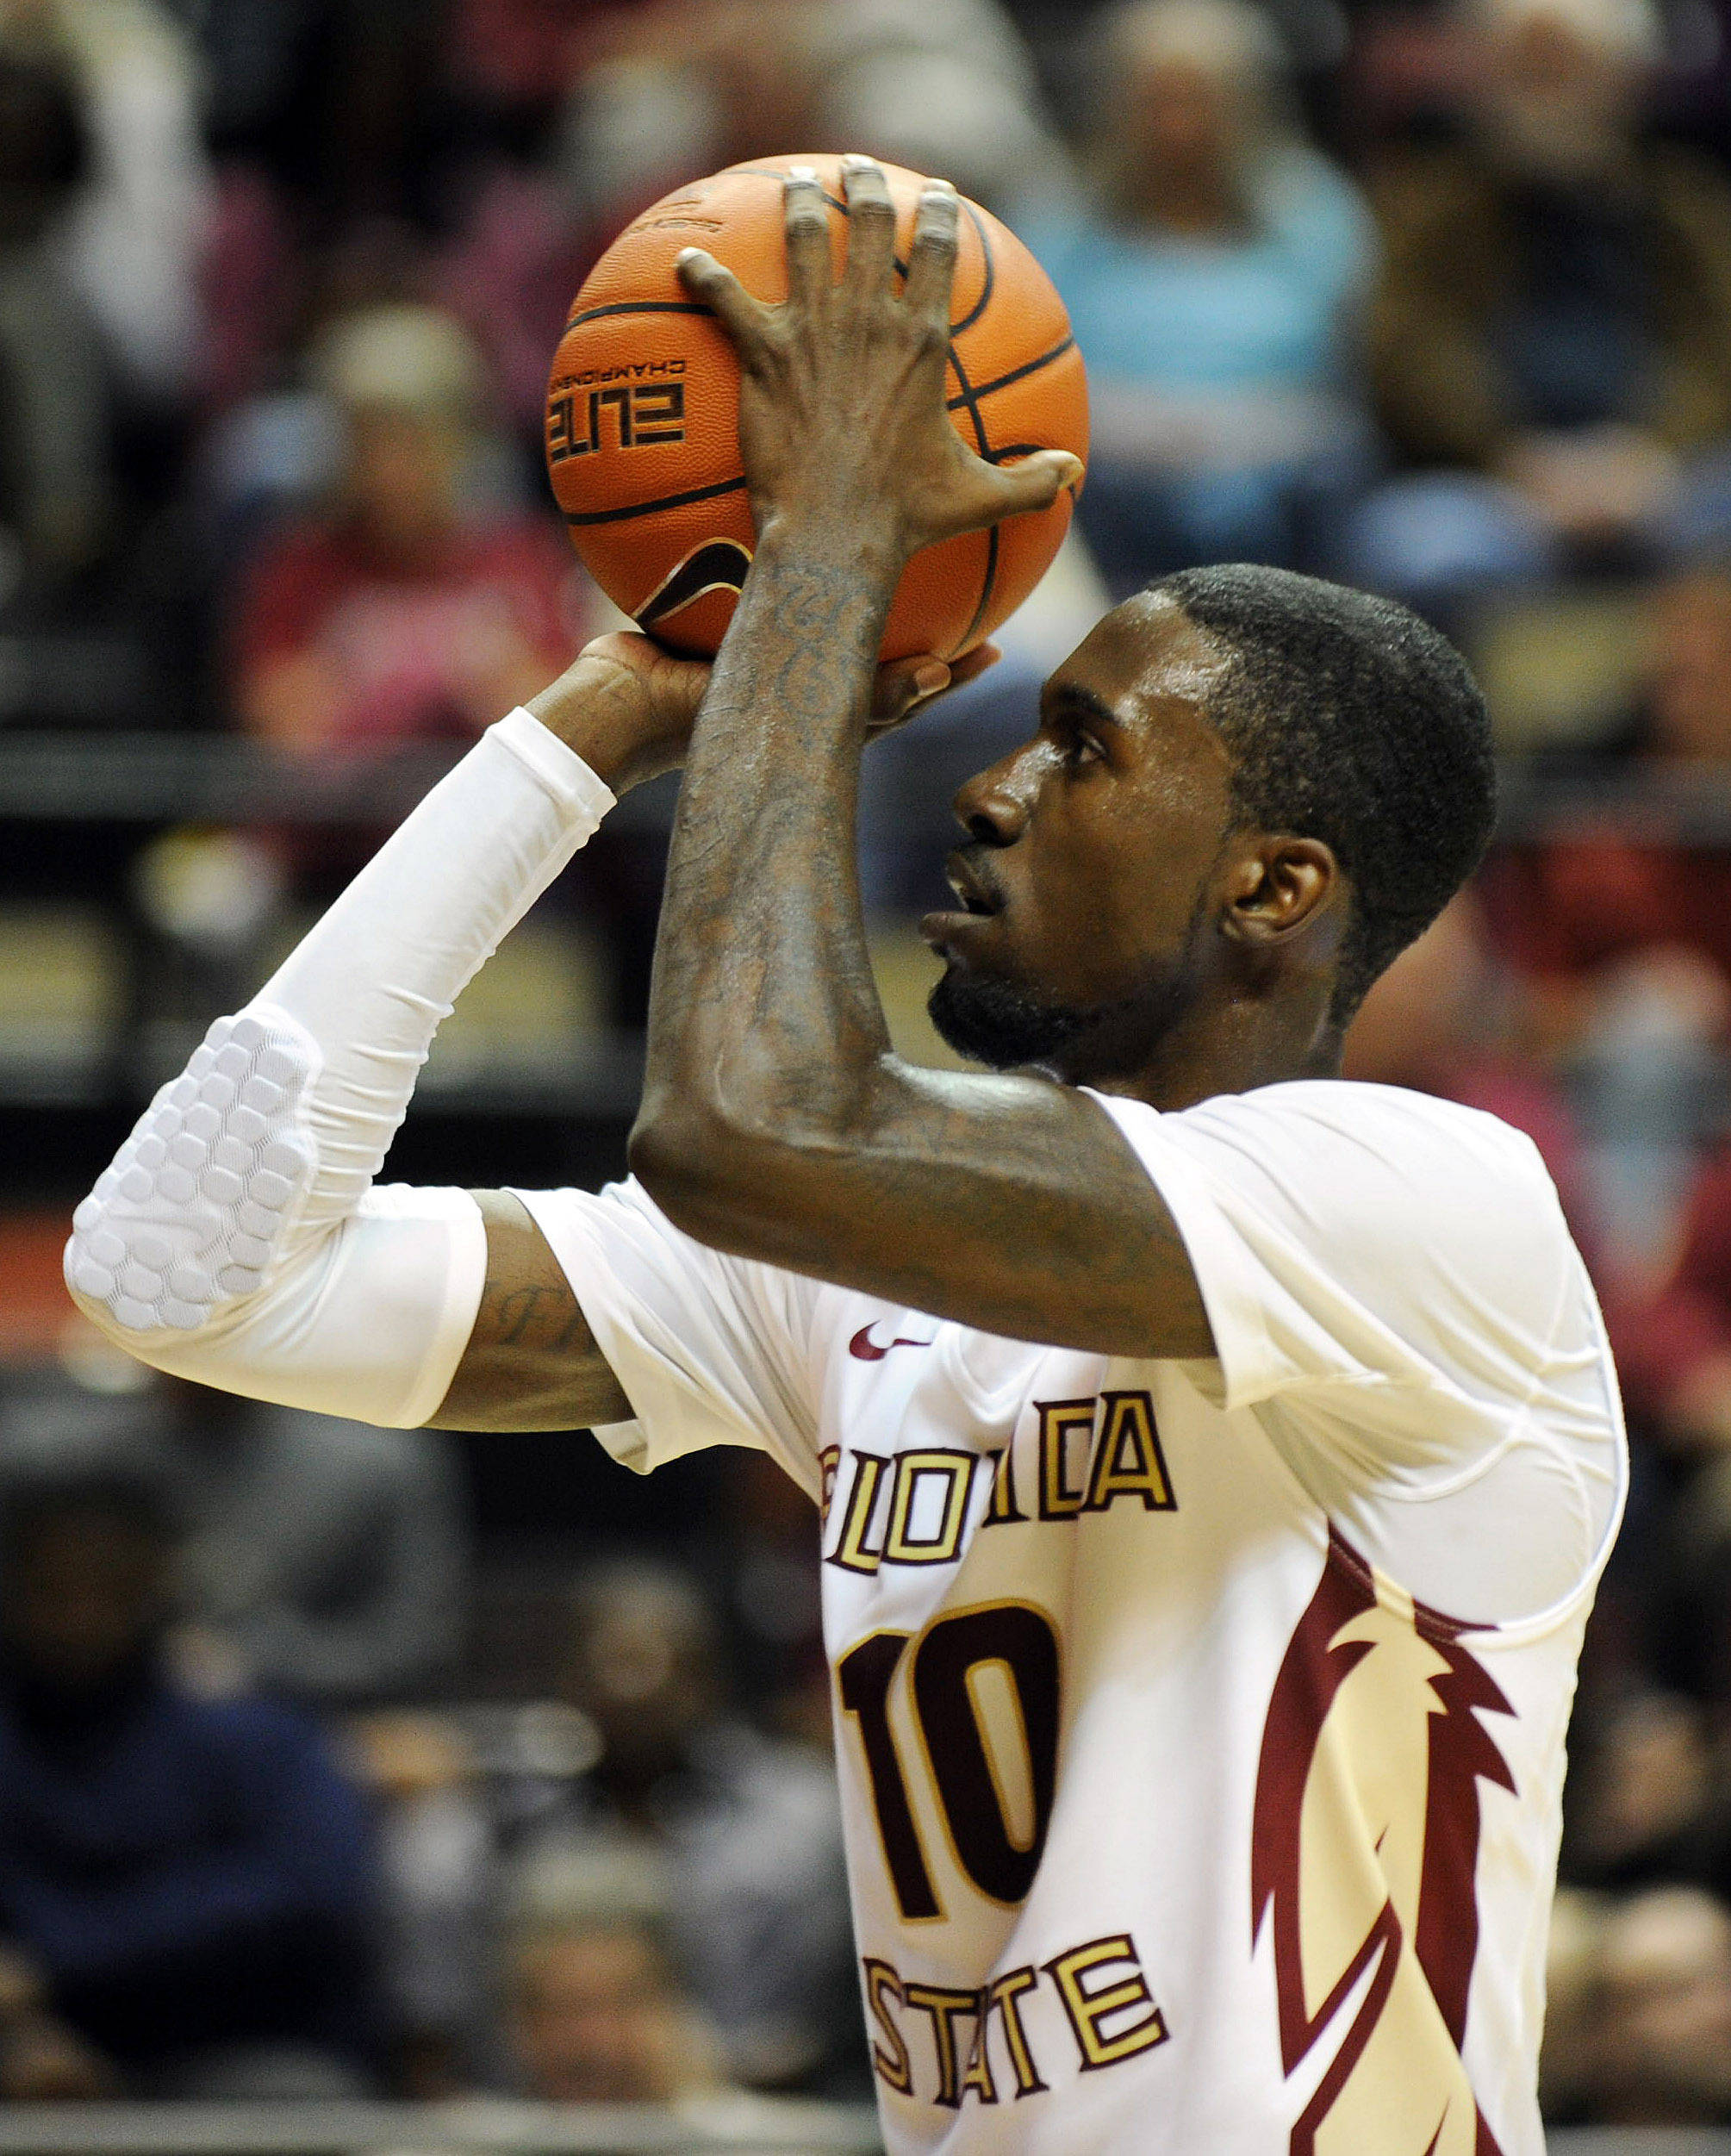 Nov 8, 2013; Tallahassee, FL, USA; Florida State Seminoles forward Okaro White (10) takes a free throw during the first half against the Jacksonville Dolphins at the Donald L. Tucker Center. Mandatory Credit: Melina Vastola-USA TODAY Sports